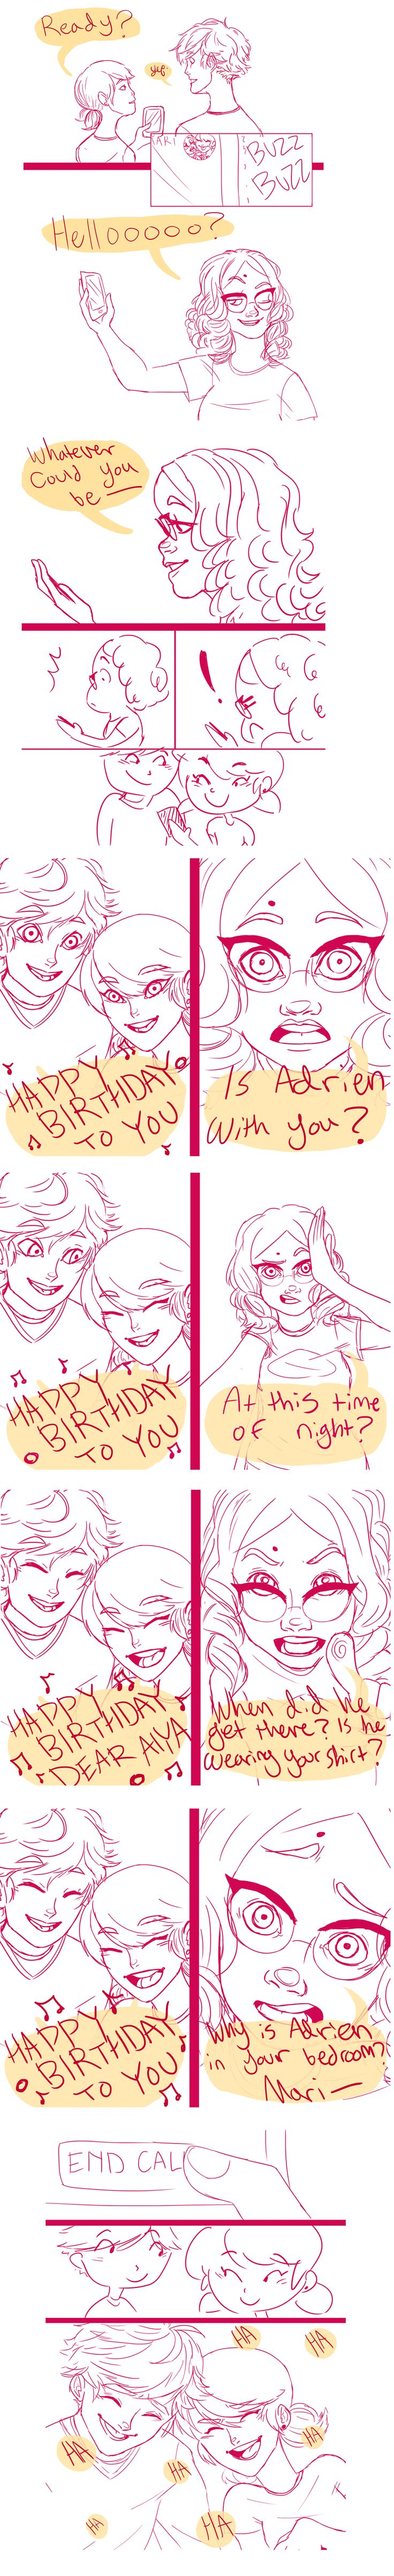 Happy Birthday by Clovercard.deviantart.com on @DeviantArt<I read a fan fiction that went exactly like this